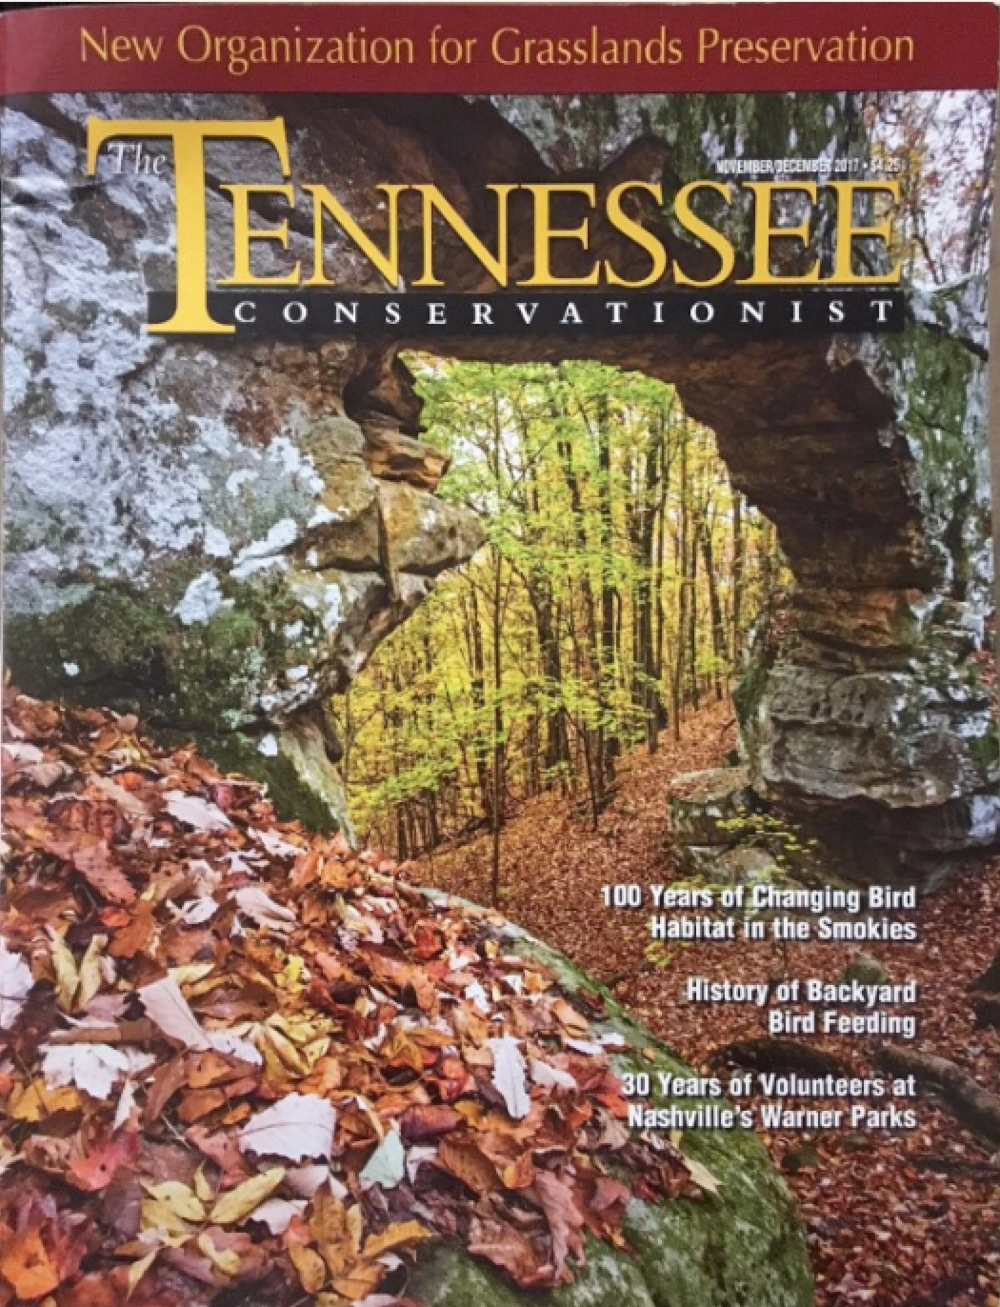 Article in The Tennessee Conservationist magazine or other popular formats -